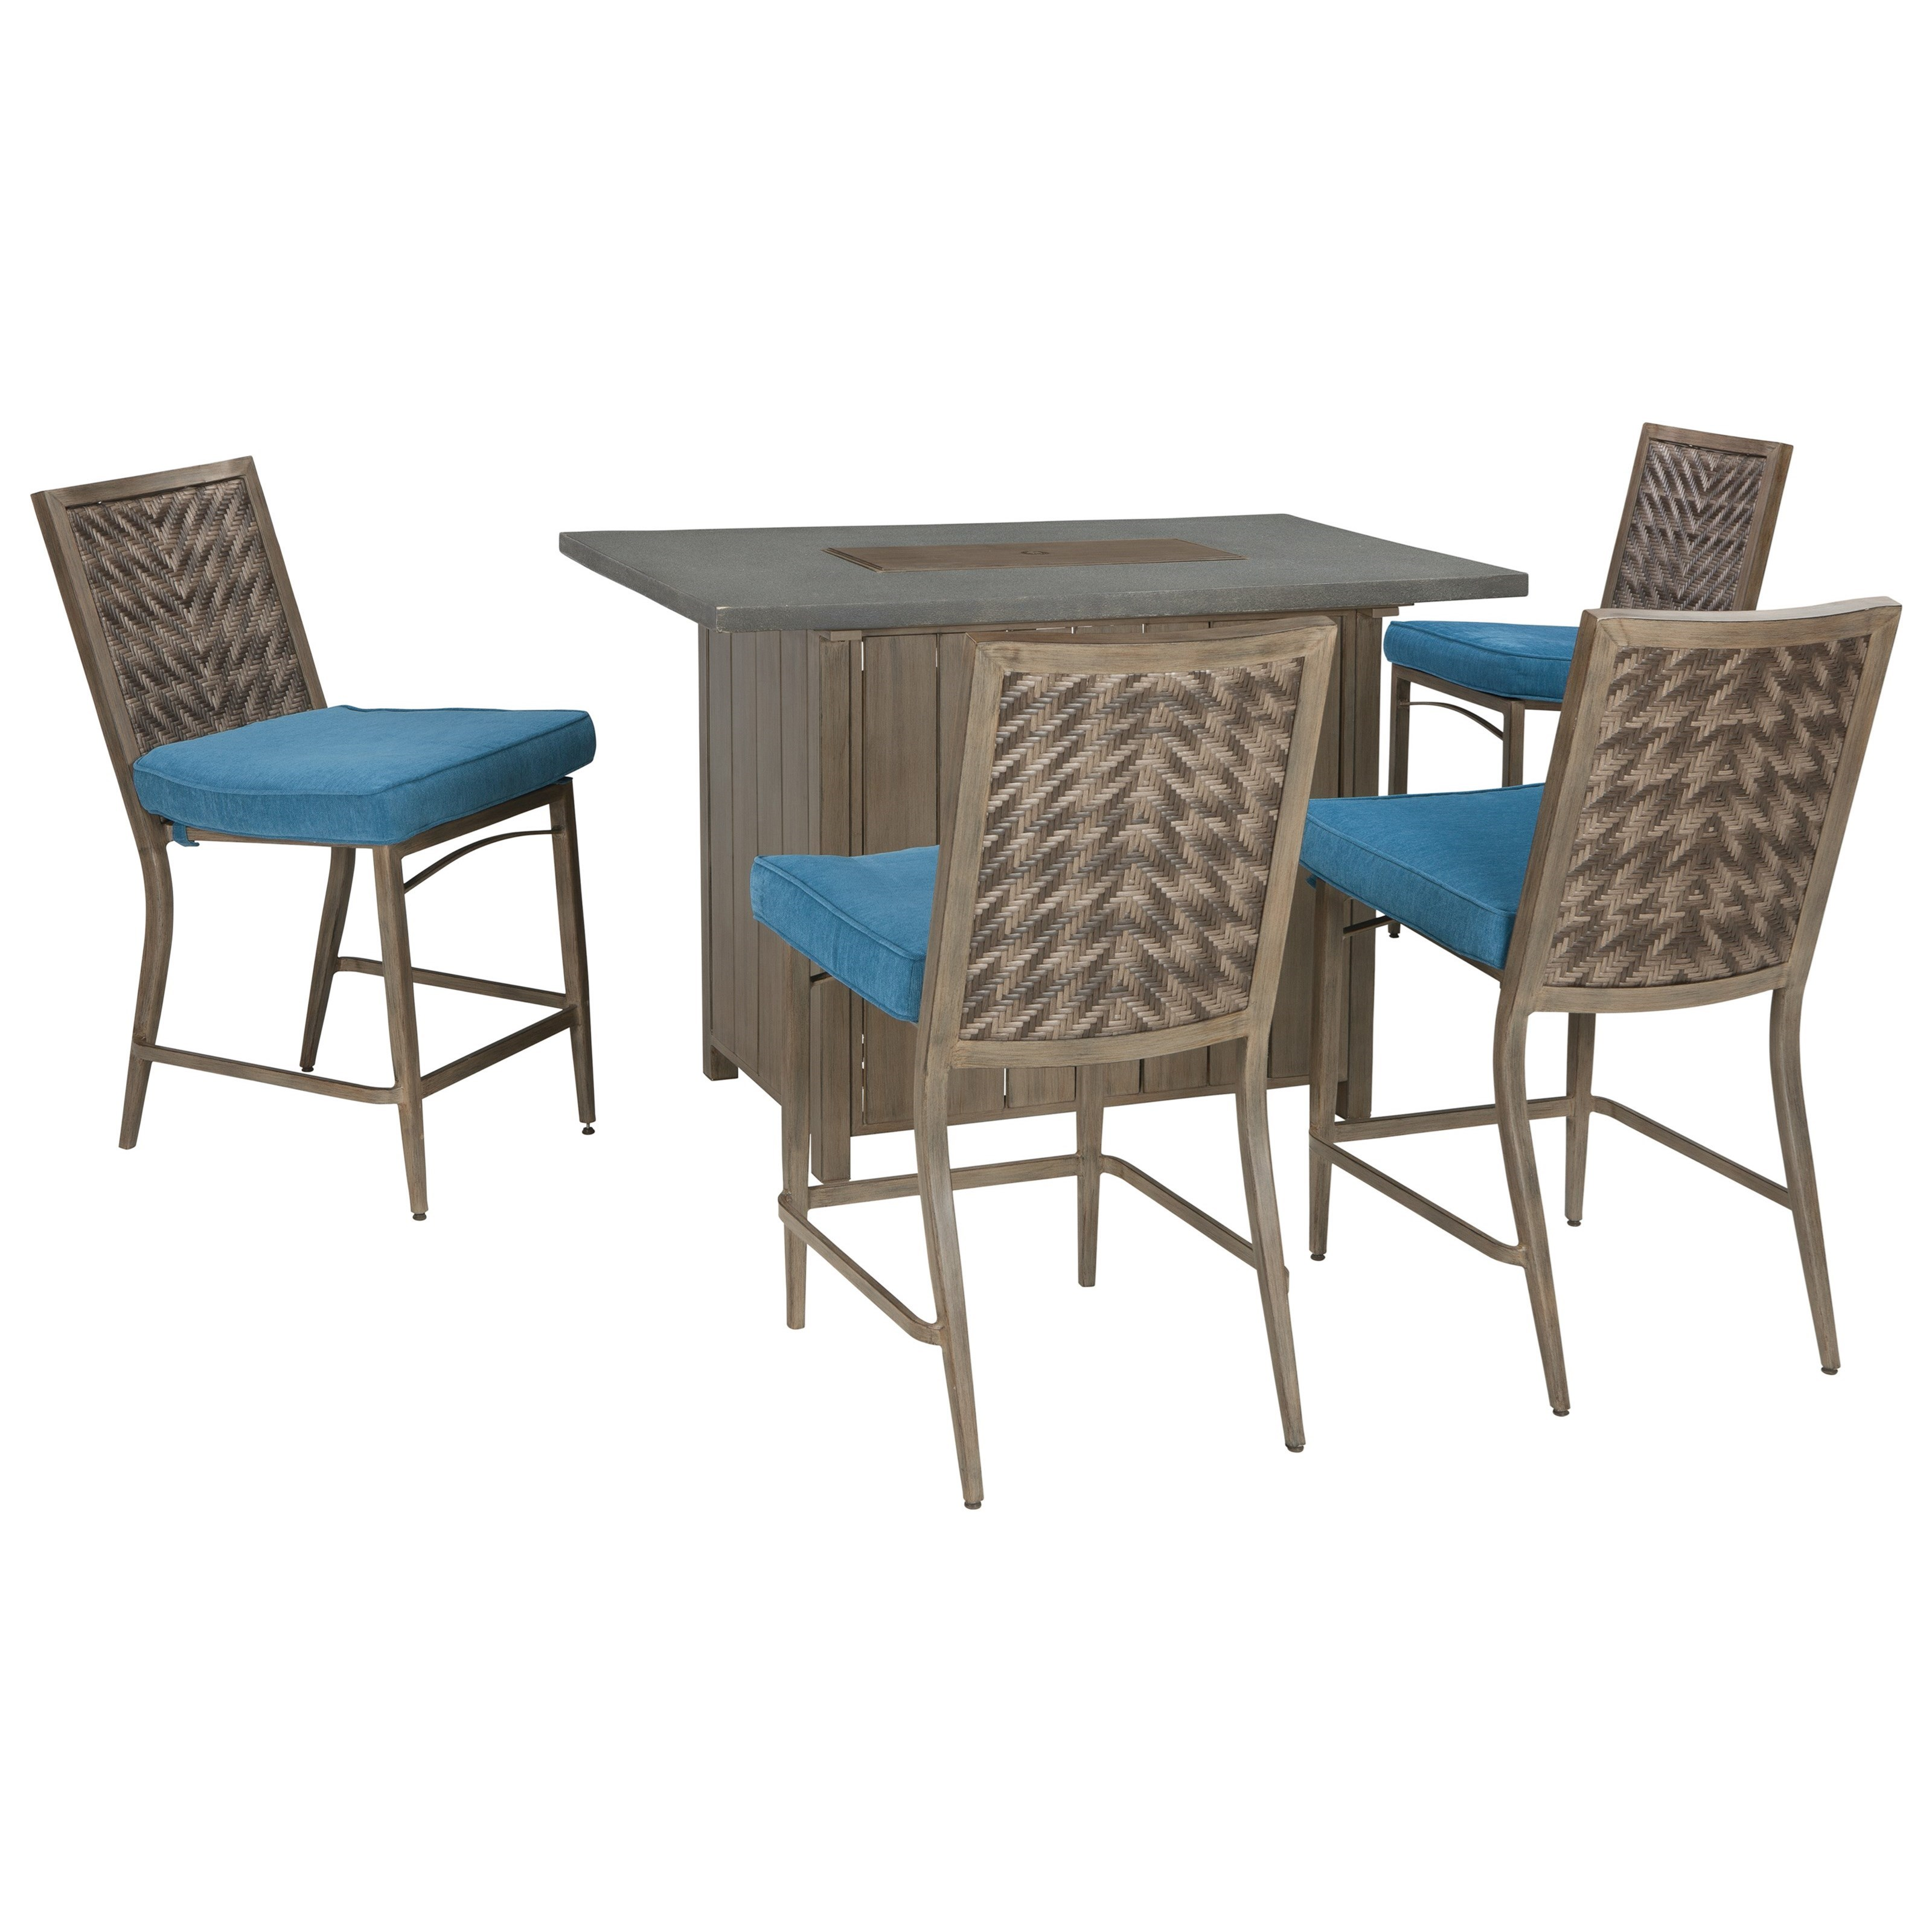 Signature Design by Ashley Partanna Set of 4 Outdoor  : products2Fsignaturedesignbyashley2Fcolor2Fpartannap556 130 b11 from www.elpasohouseholdfurniture.com size 3200 x 3200 jpeg 749kB